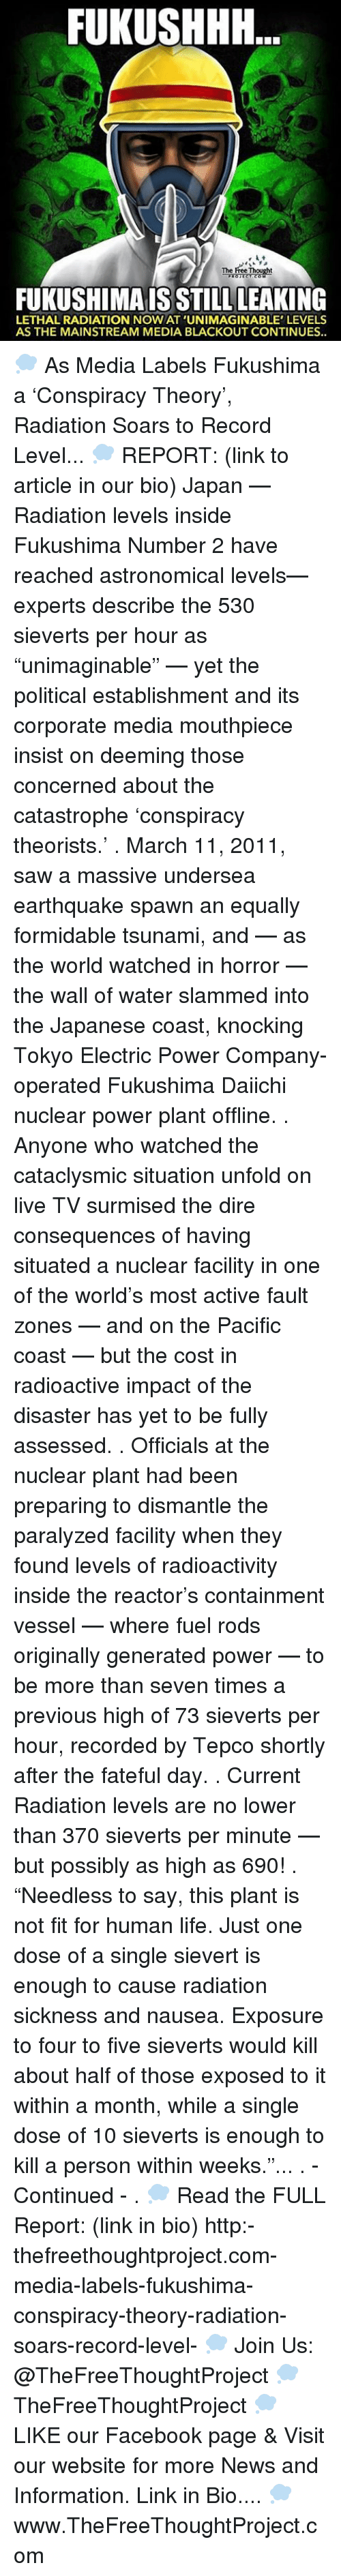 """Conspiracy Theorists: FUKUSHHH  A  FUKUSHIMAIS STILL LEAKING  LETHAL RADIATION NOW AT 'UNIMAGINABLE' LEVELS  AS THE MAINSTREAM MEDIA BLACKOUT CONTINUES.. 💭 As Media Labels Fukushima a 'Conspiracy Theory', Radiation Soars to Record Level... 💭 REPORT: (link to article in our bio) Japan — Radiation levels inside Fukushima Number 2 have reached astronomical levels— experts describe the 530 sieverts per hour as """"unimaginable"""" — yet the political establishment and its corporate media mouthpiece insist on deeming those concerned about the catastrophe 'conspiracy theorists.' . March 11, 2011, saw a massive undersea earthquake spawn an equally formidable tsunami, and — as the world watched in horror — the wall of water slammed into the Japanese coast, knocking Tokyo Electric Power Company-operated Fukushima Daiichi nuclear power plant offline. . Anyone who watched the cataclysmic situation unfold on live TV surmised the dire consequences of having situated a nuclear facility in one of the world's most active fault zones — and on the Pacific coast — but the cost in radioactive impact of the disaster has yet to be fully assessed. . Officials at the nuclear plant had been preparing to dismantle the paralyzed facility when they found levels of radioactivity inside the reactor's containment vessel — where fuel rods originally generated power — to be more than seven times a previous high of 73 sieverts per hour, recorded by Tepco shortly after the fateful day. . Current Radiation levels are no lower than 370 sieverts per minute — but possibly as high as 690! . """"Needless to say, this plant is not fit for human life. Just one dose of a single sievert is enough to cause radiation sickness and nausea. Exposure to four to five sieverts would kill about half of those exposed to it within a month, while a single dose of 10 sieverts is enough to kill a person within weeks.""""... . - Continued - . 💭 Read the FULL Report: (link in bio) http:-thefreethoughtproject.com-media-labels-fukushima-co"""